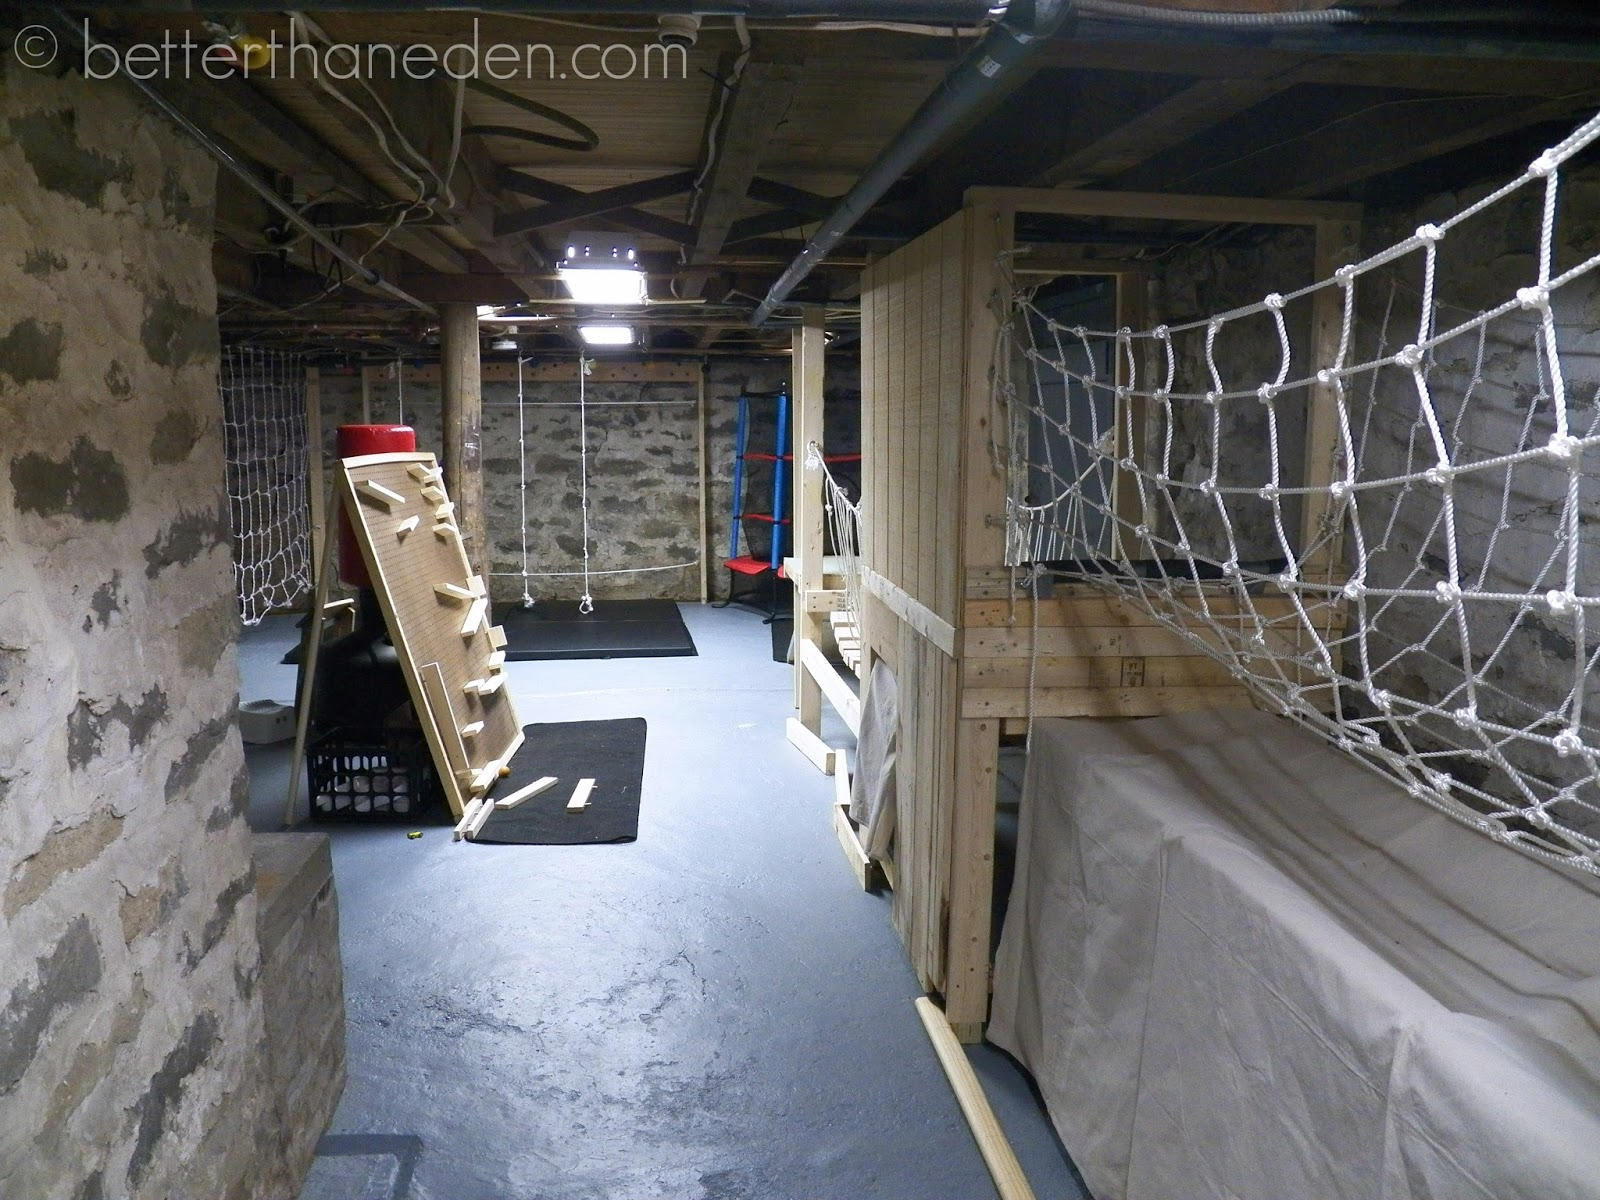 Basement Construction Ideas To Strengthen Your Basement A Basement Gym for the Boys